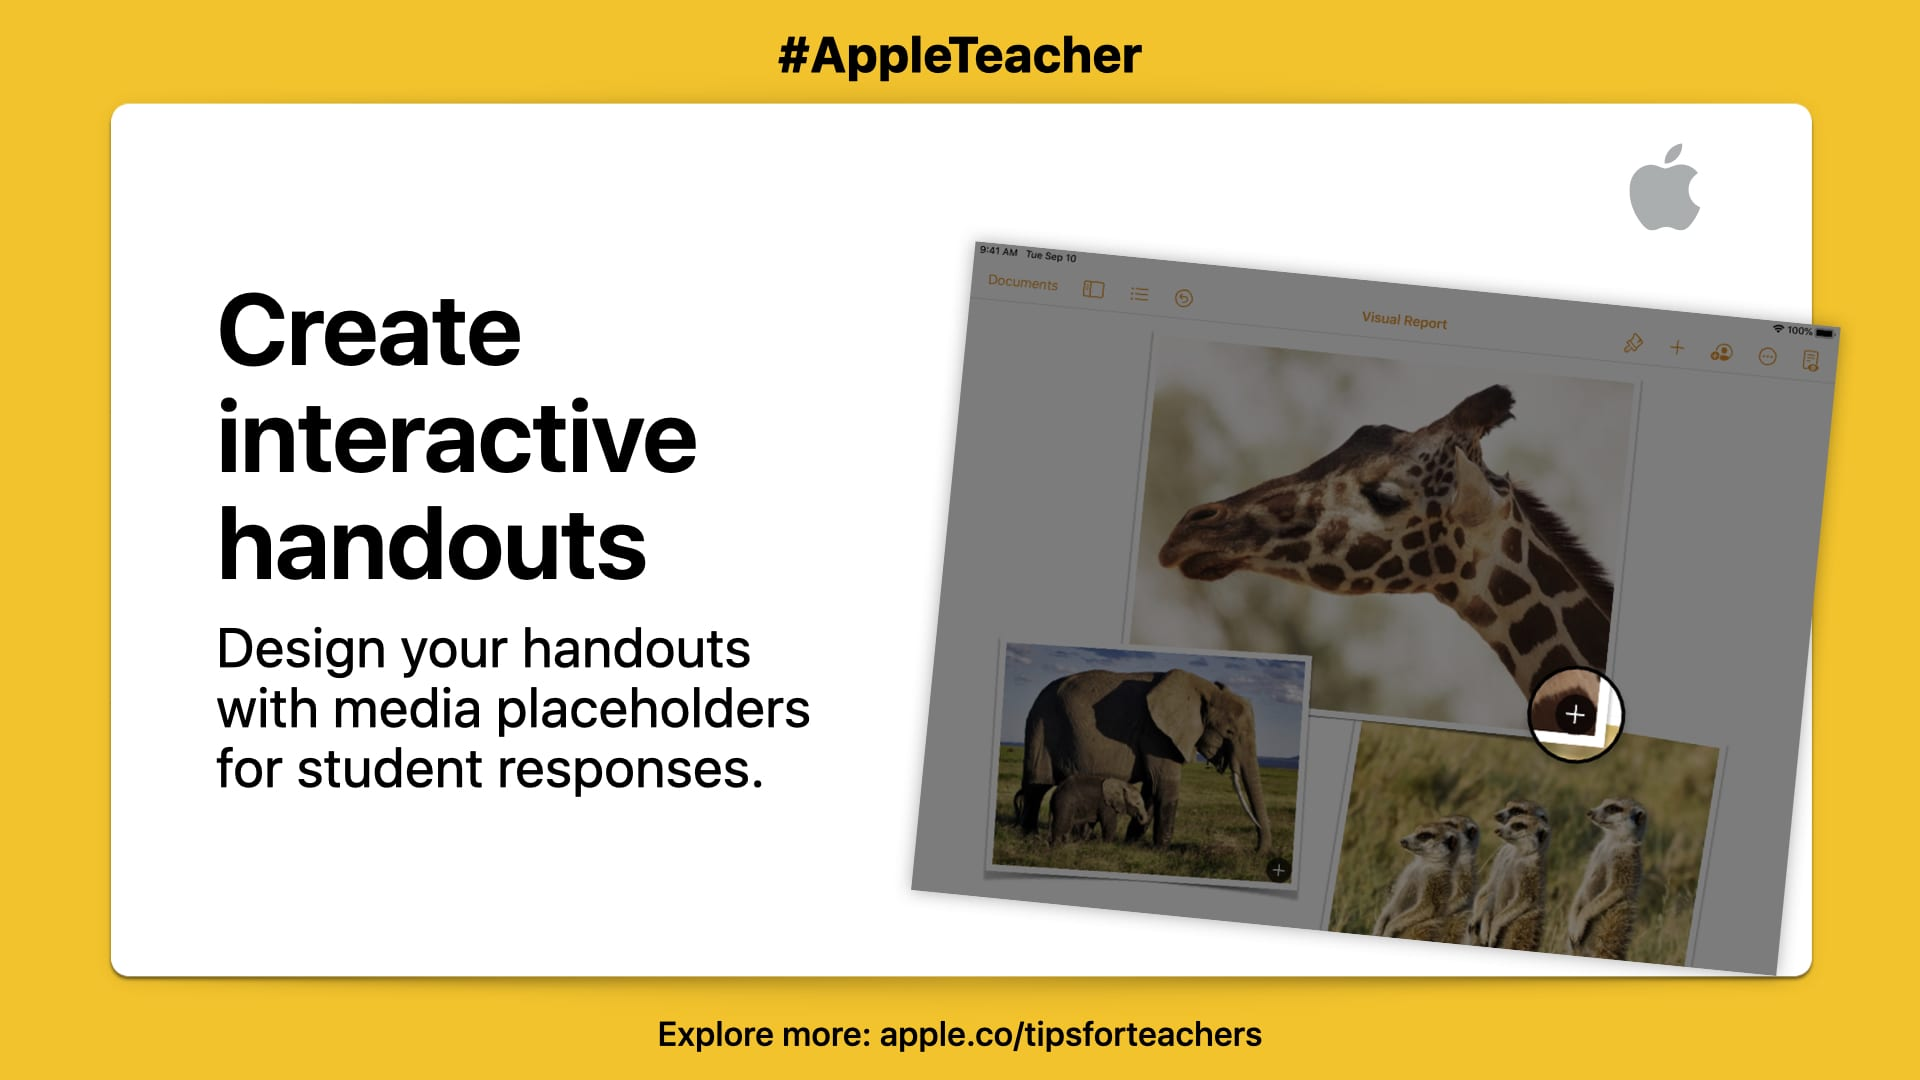 """Design your handouts with media placeholders for student responses."" Picture of giraffe on white background with yellow border."